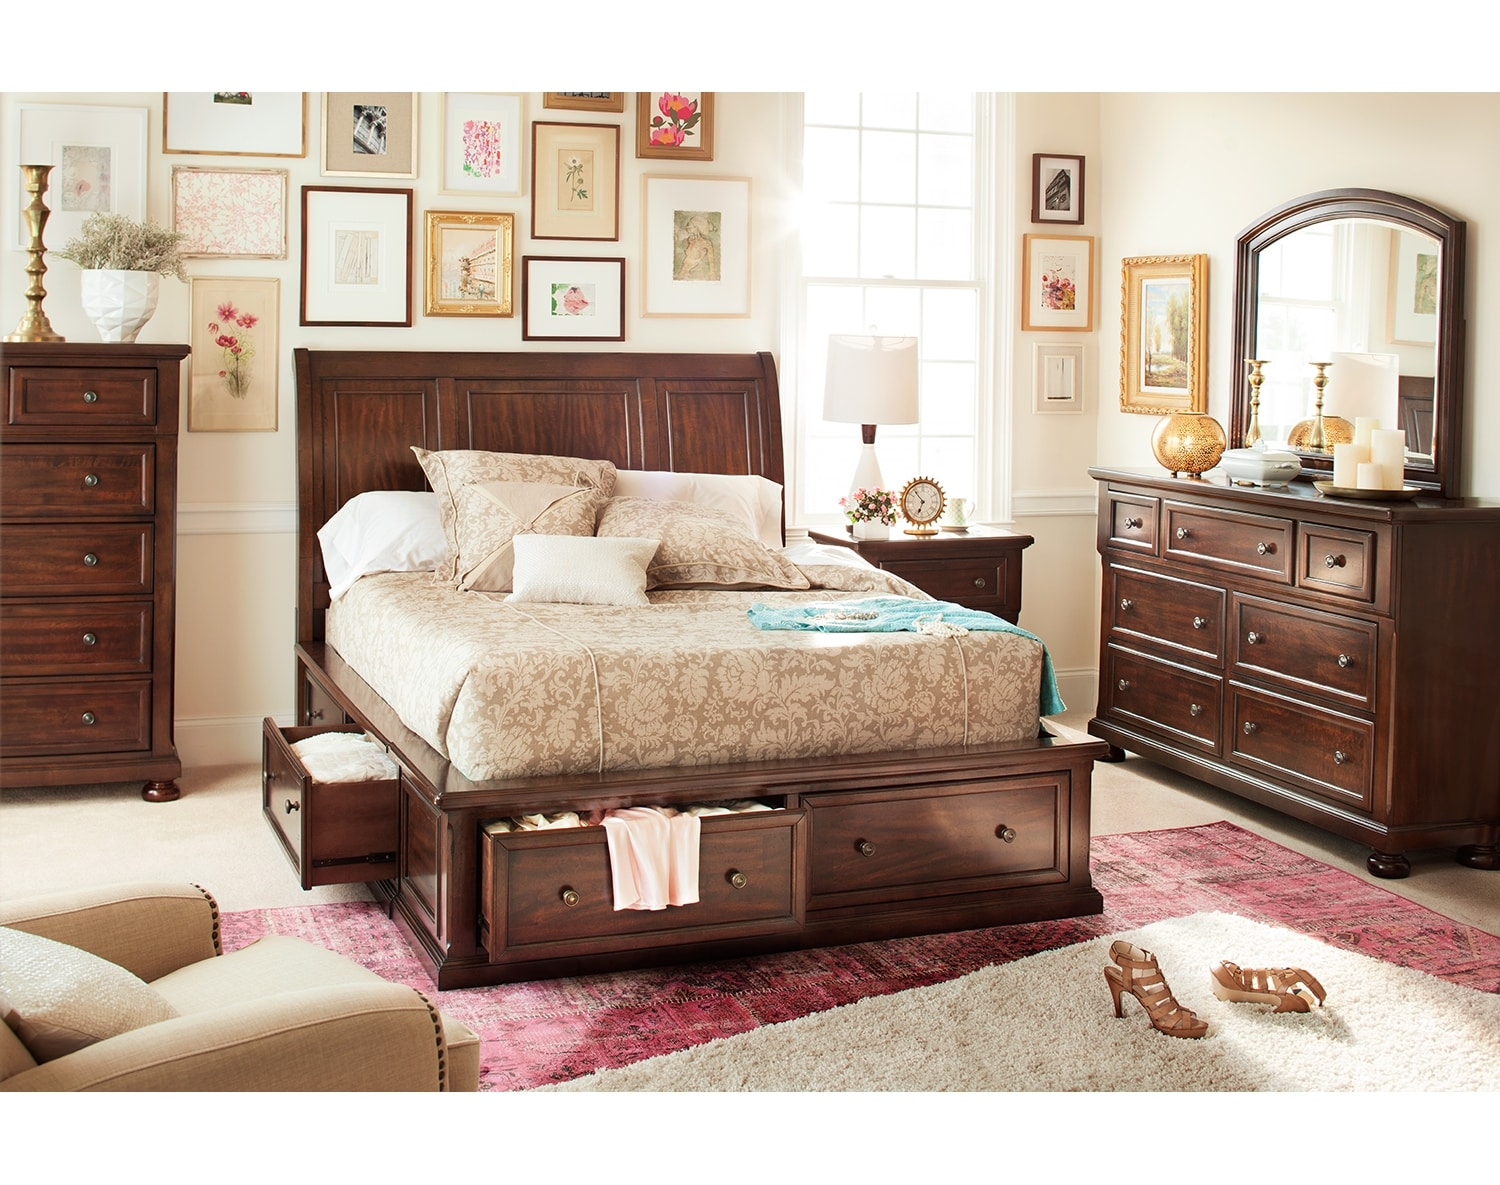 The Hanover Storage Bedroom Collection   Cherry